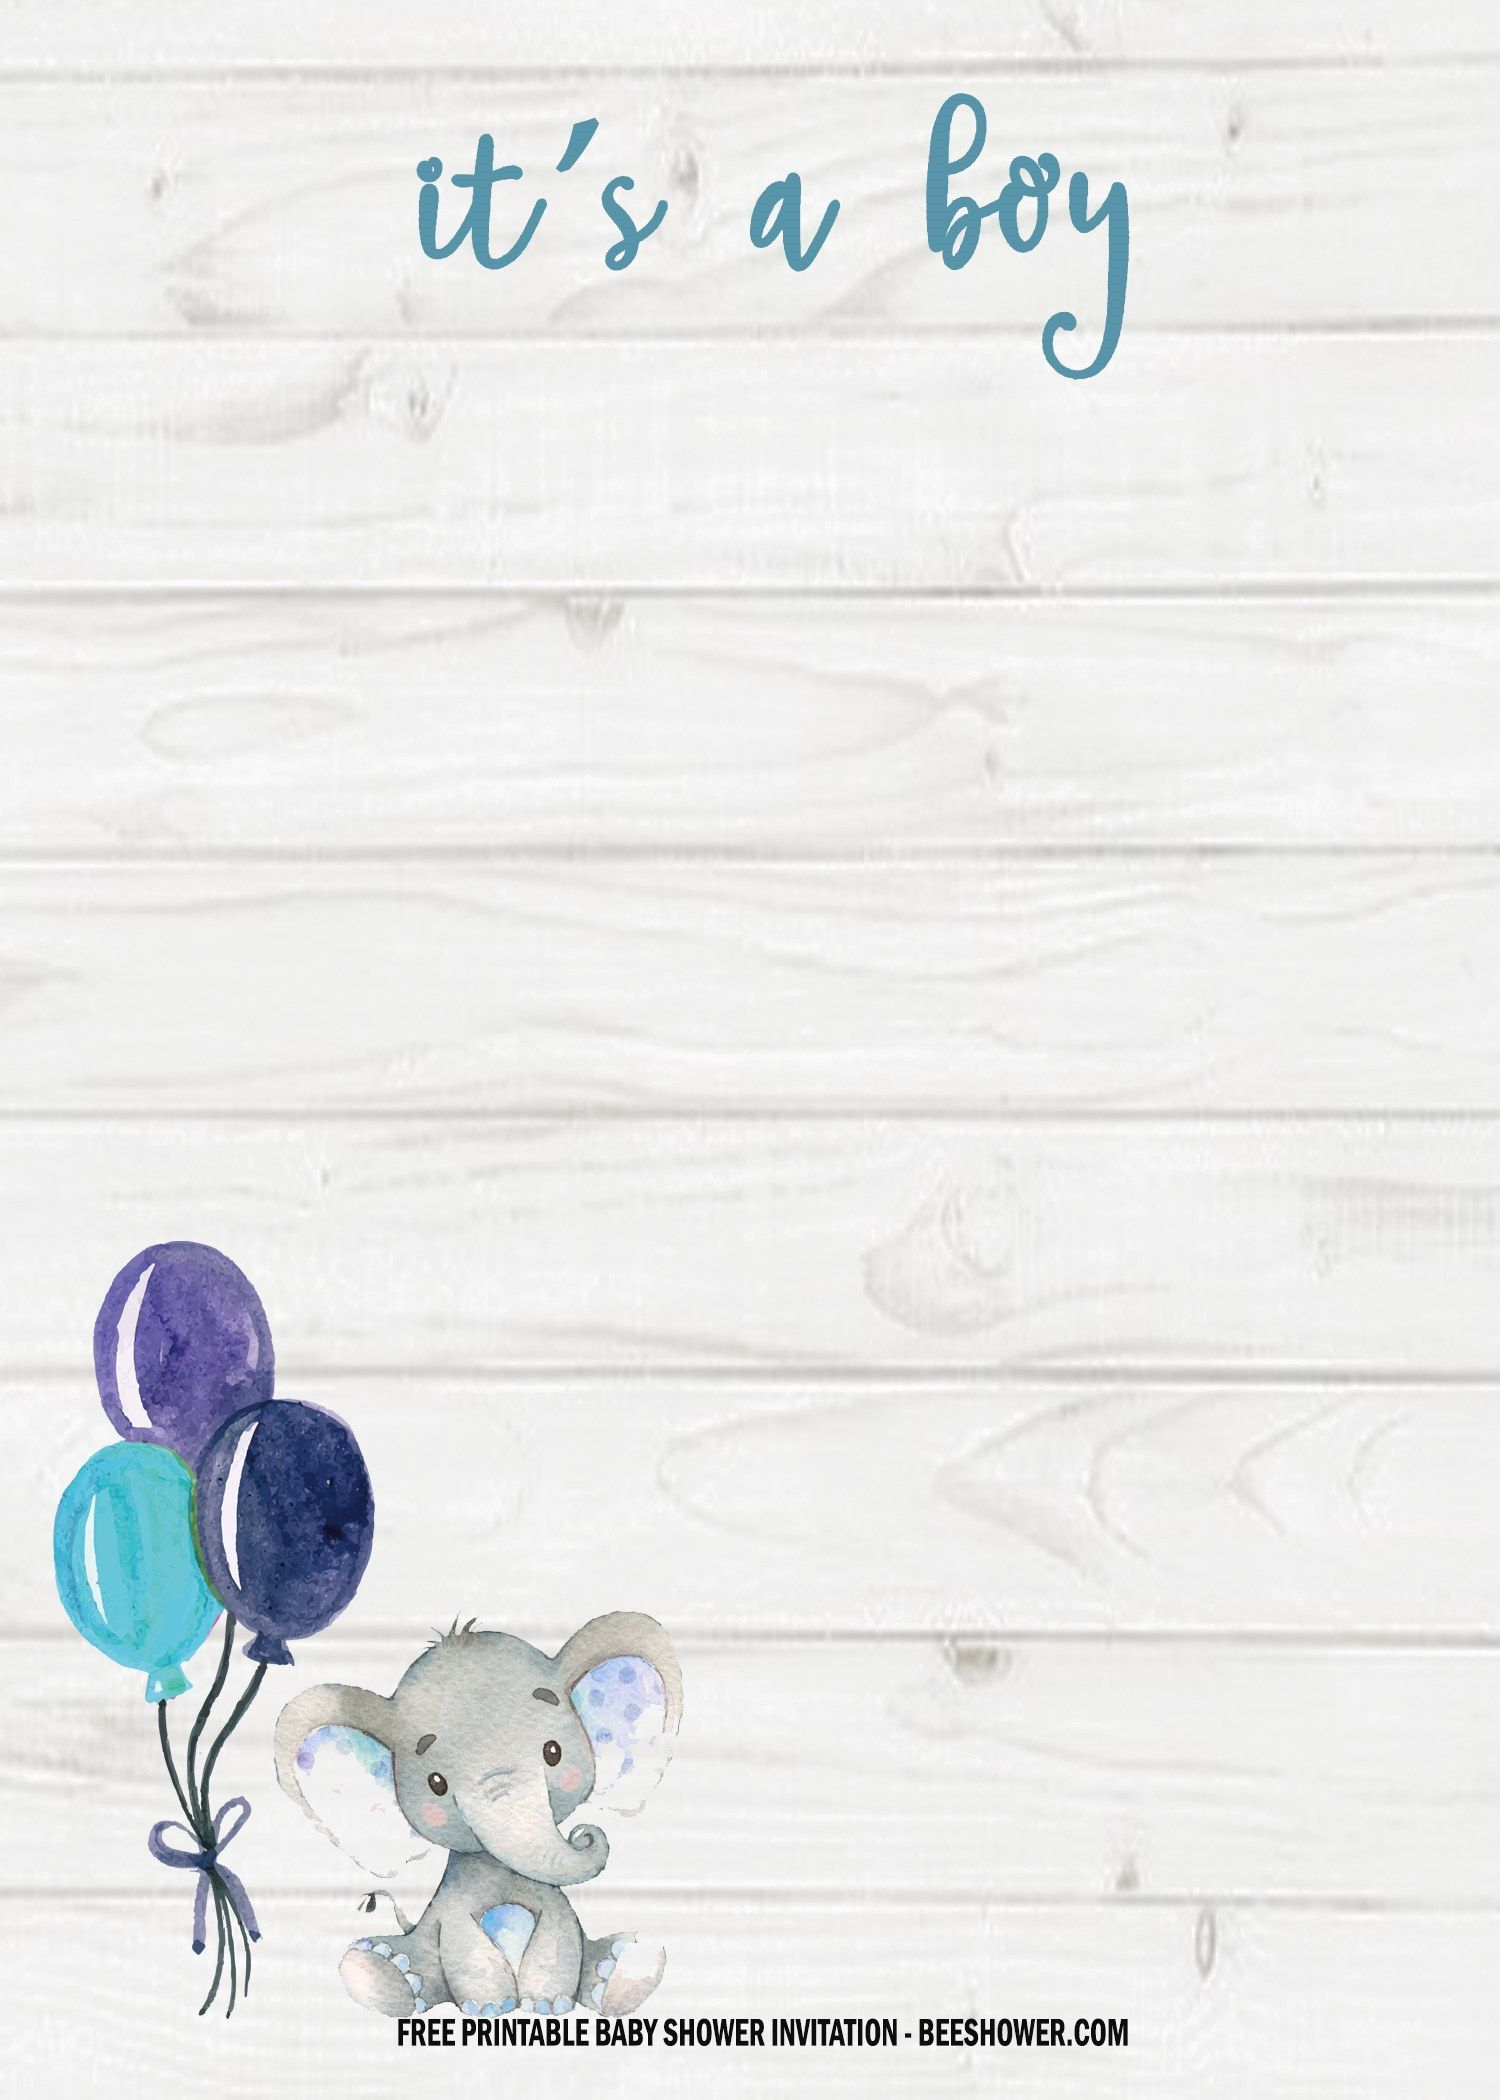 6 Free Blue Elephant Themed Birthday And Baby Shower Invitation Templates Free Printable Baby Shower Invitations Baby Boy Invitations Elephant Baby Shower Invitations